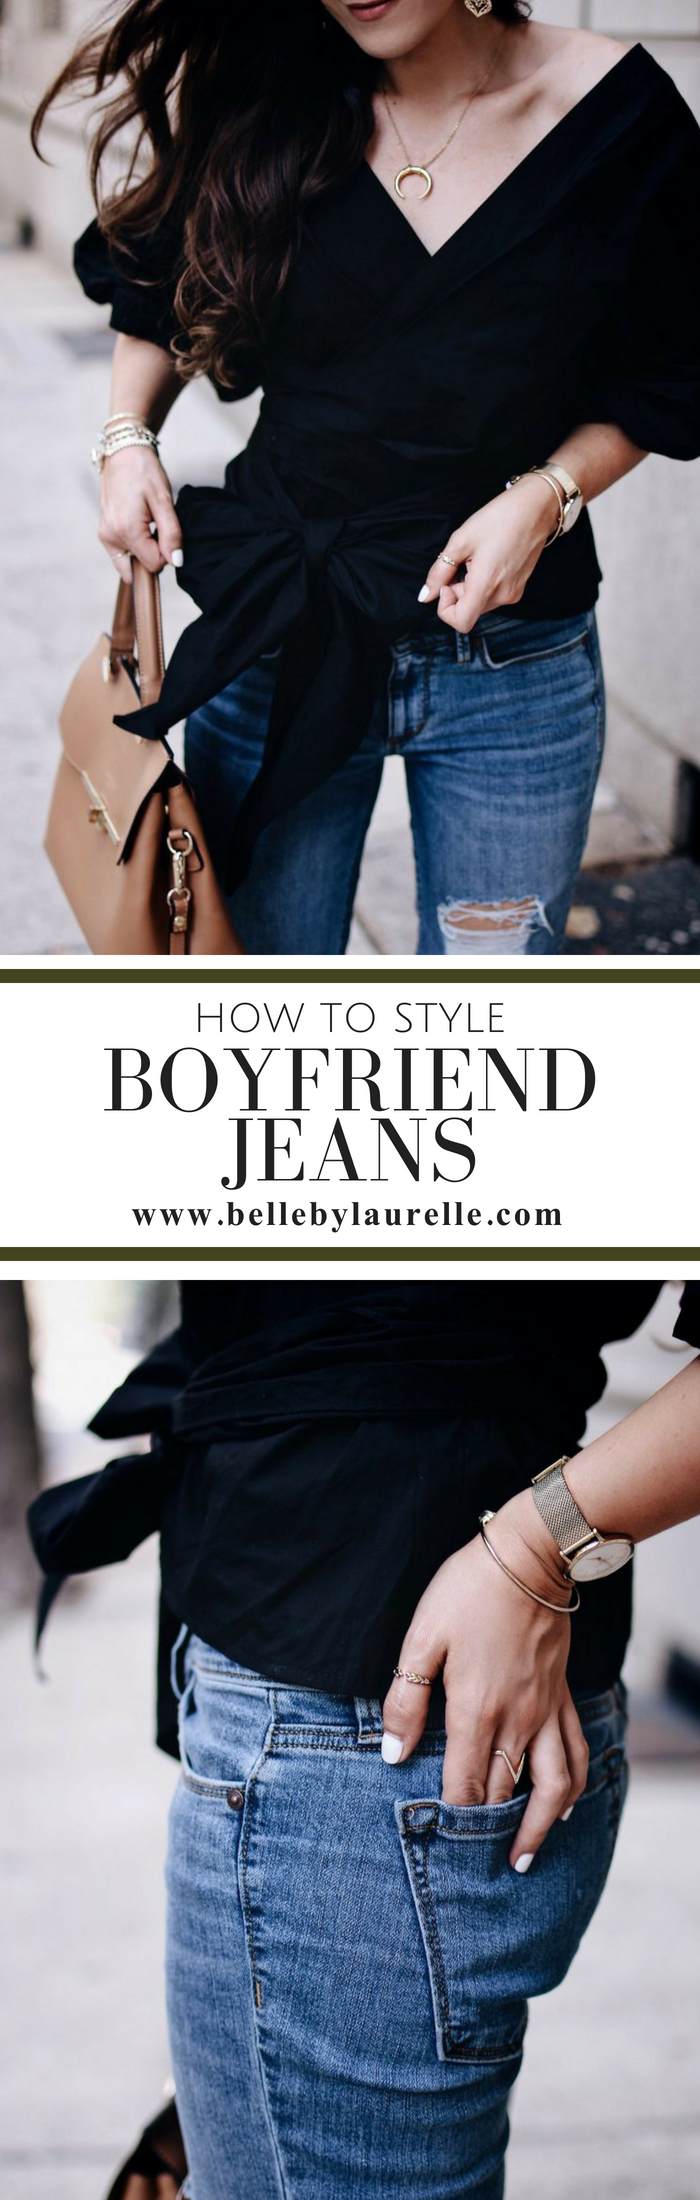 Belle by Laurelle Blog How to Style Boyfriend Jeans